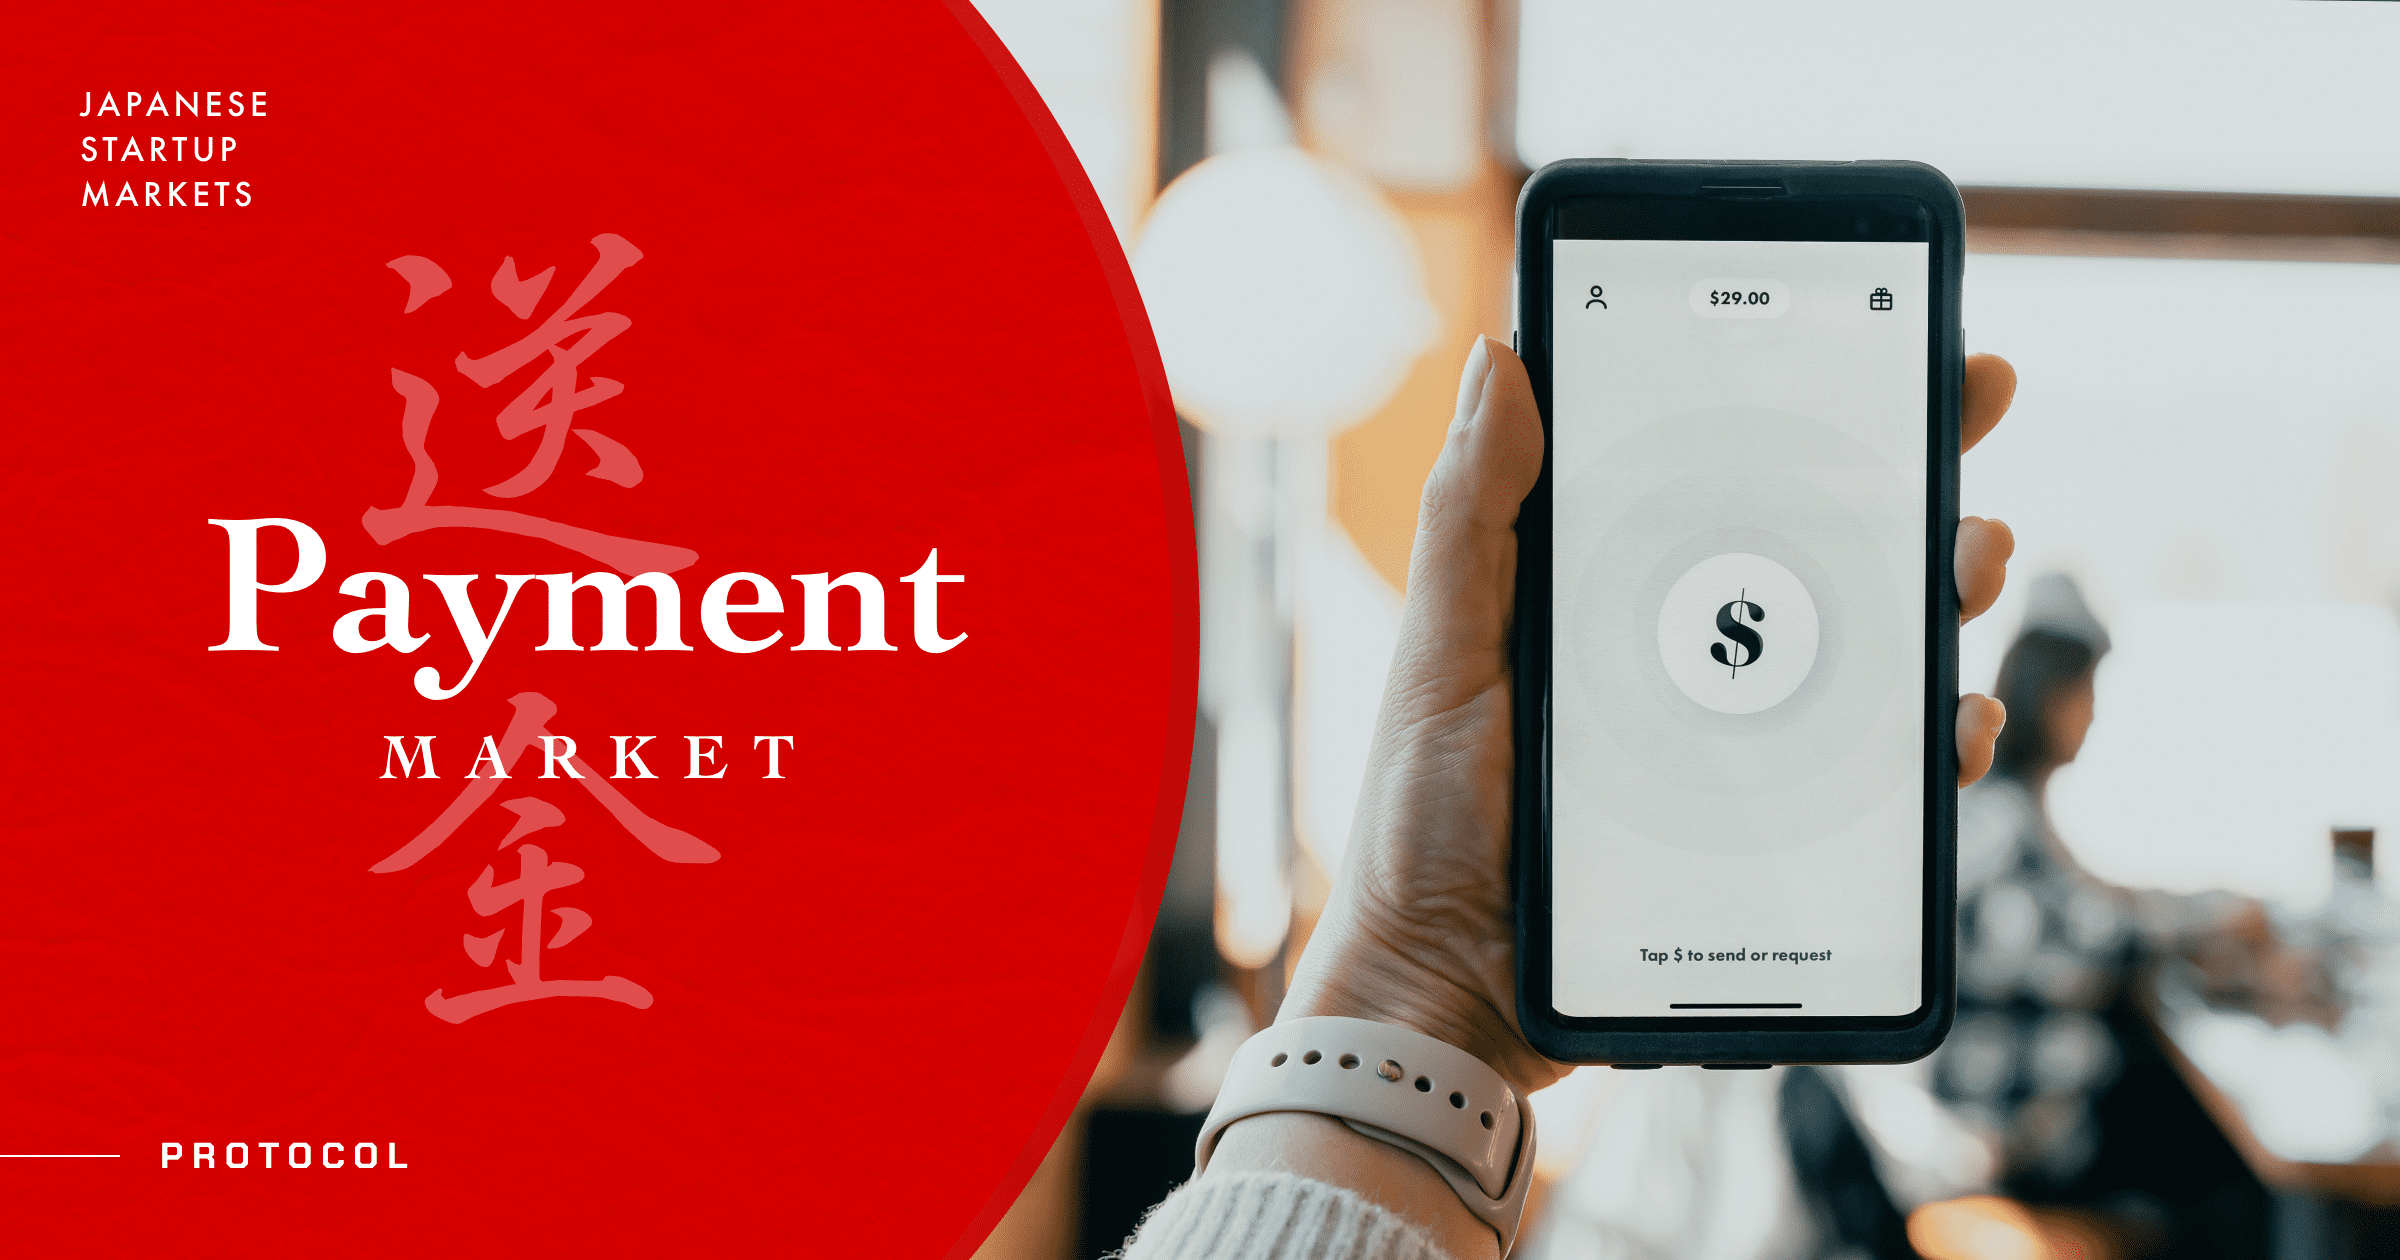 Japanese Startup Markets: Payment